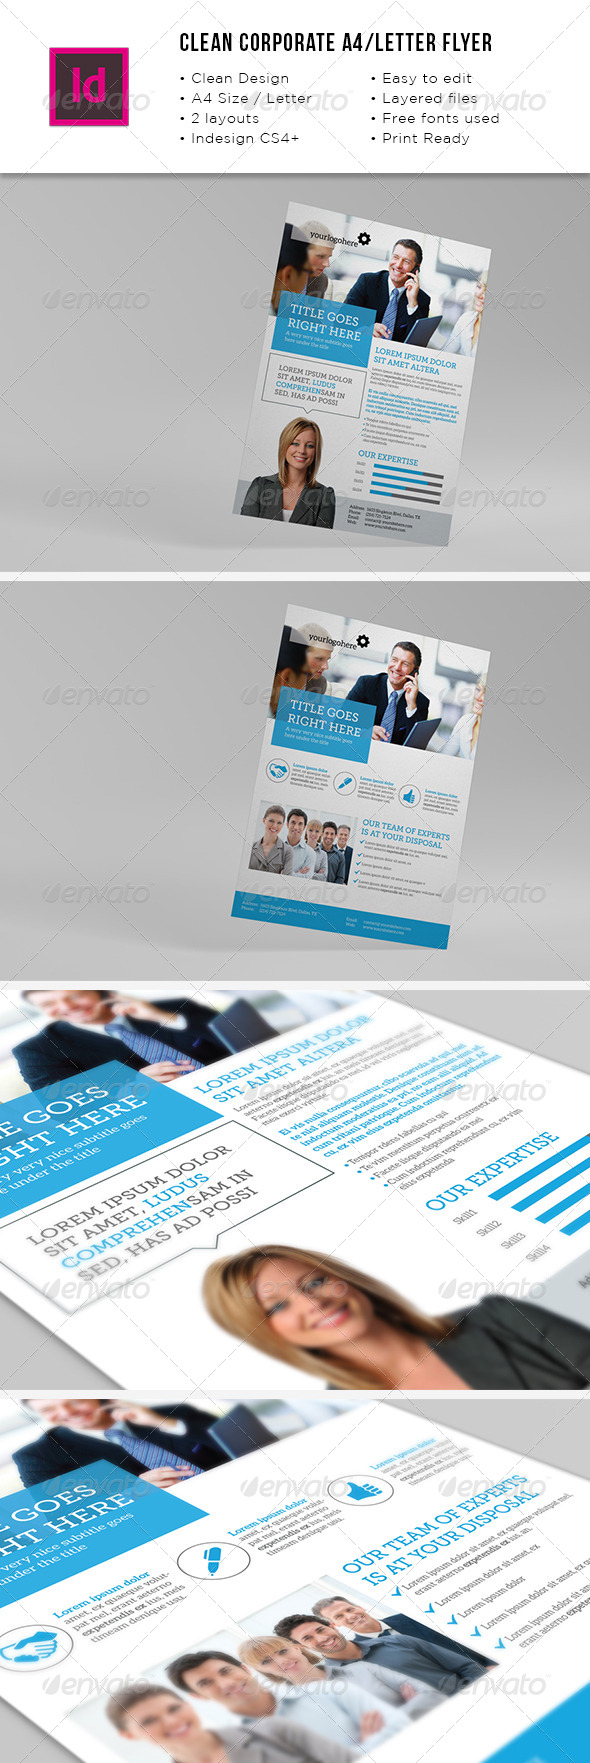 GraphicRiver Clean Corporate A4 Letter Flyer 8611063